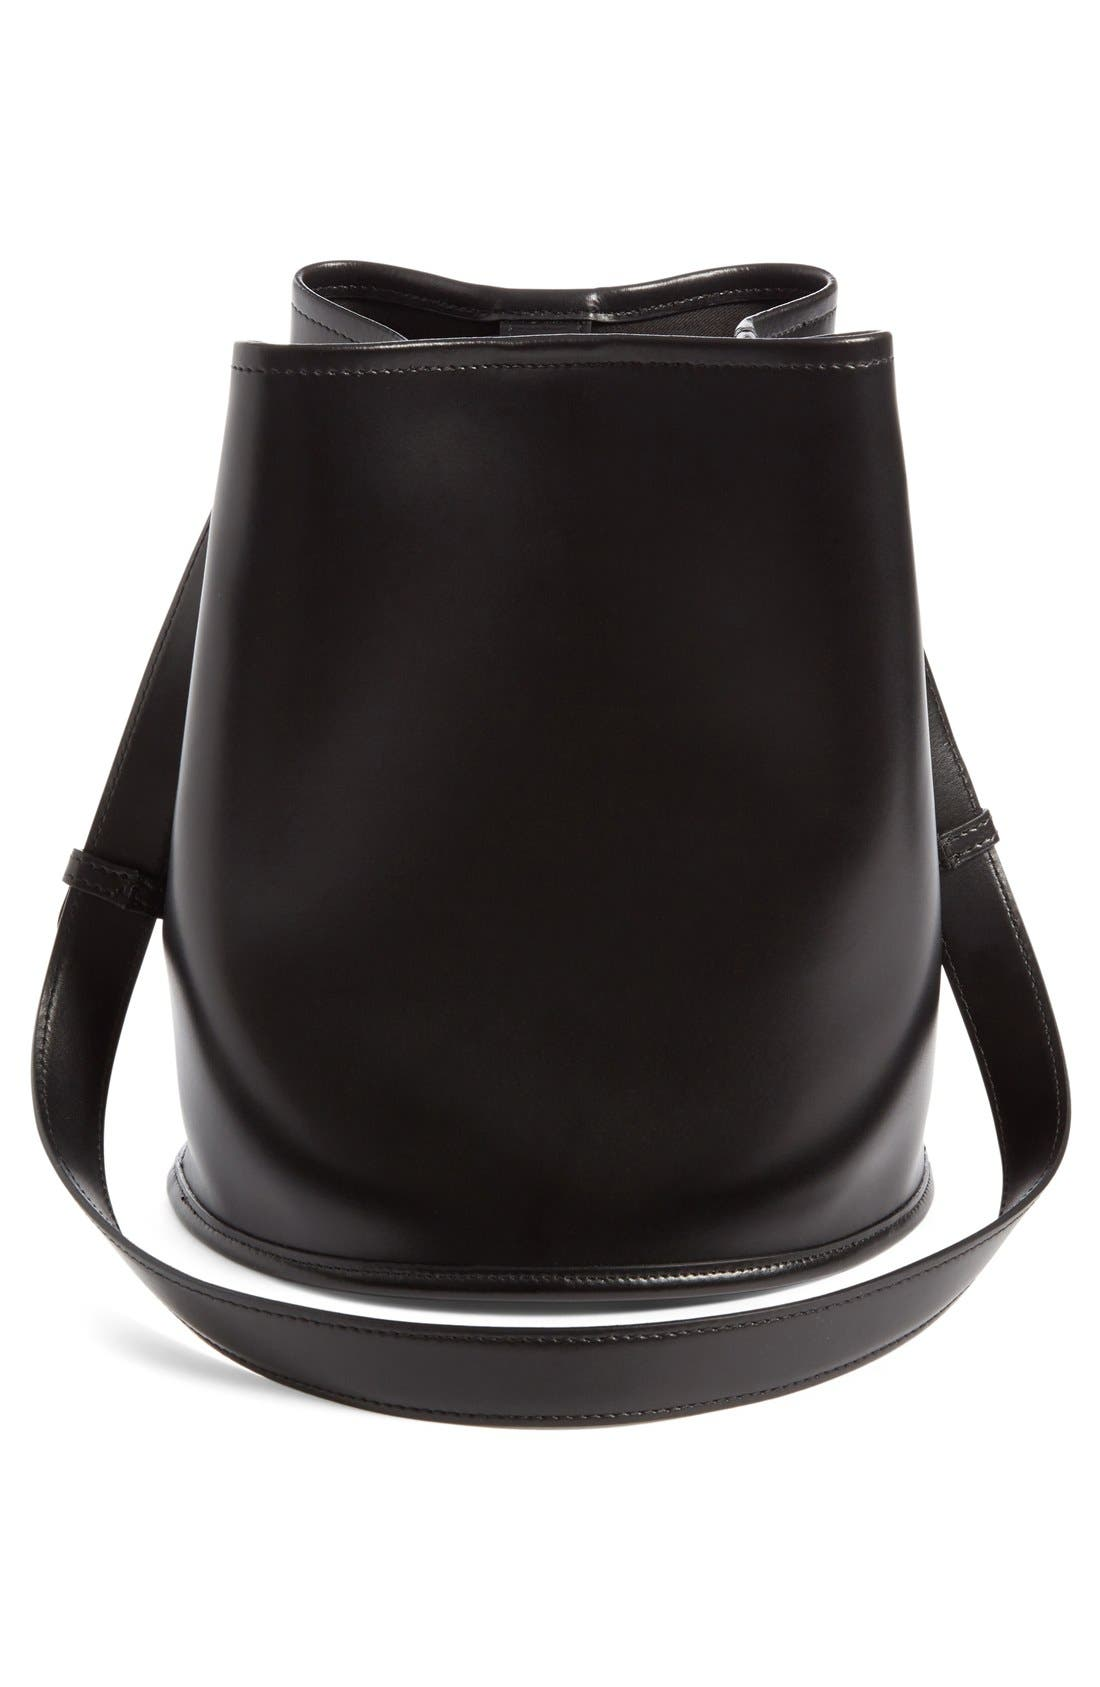 Small Leather Bucket Bag,                             Alternate thumbnail 2, color,                             Black